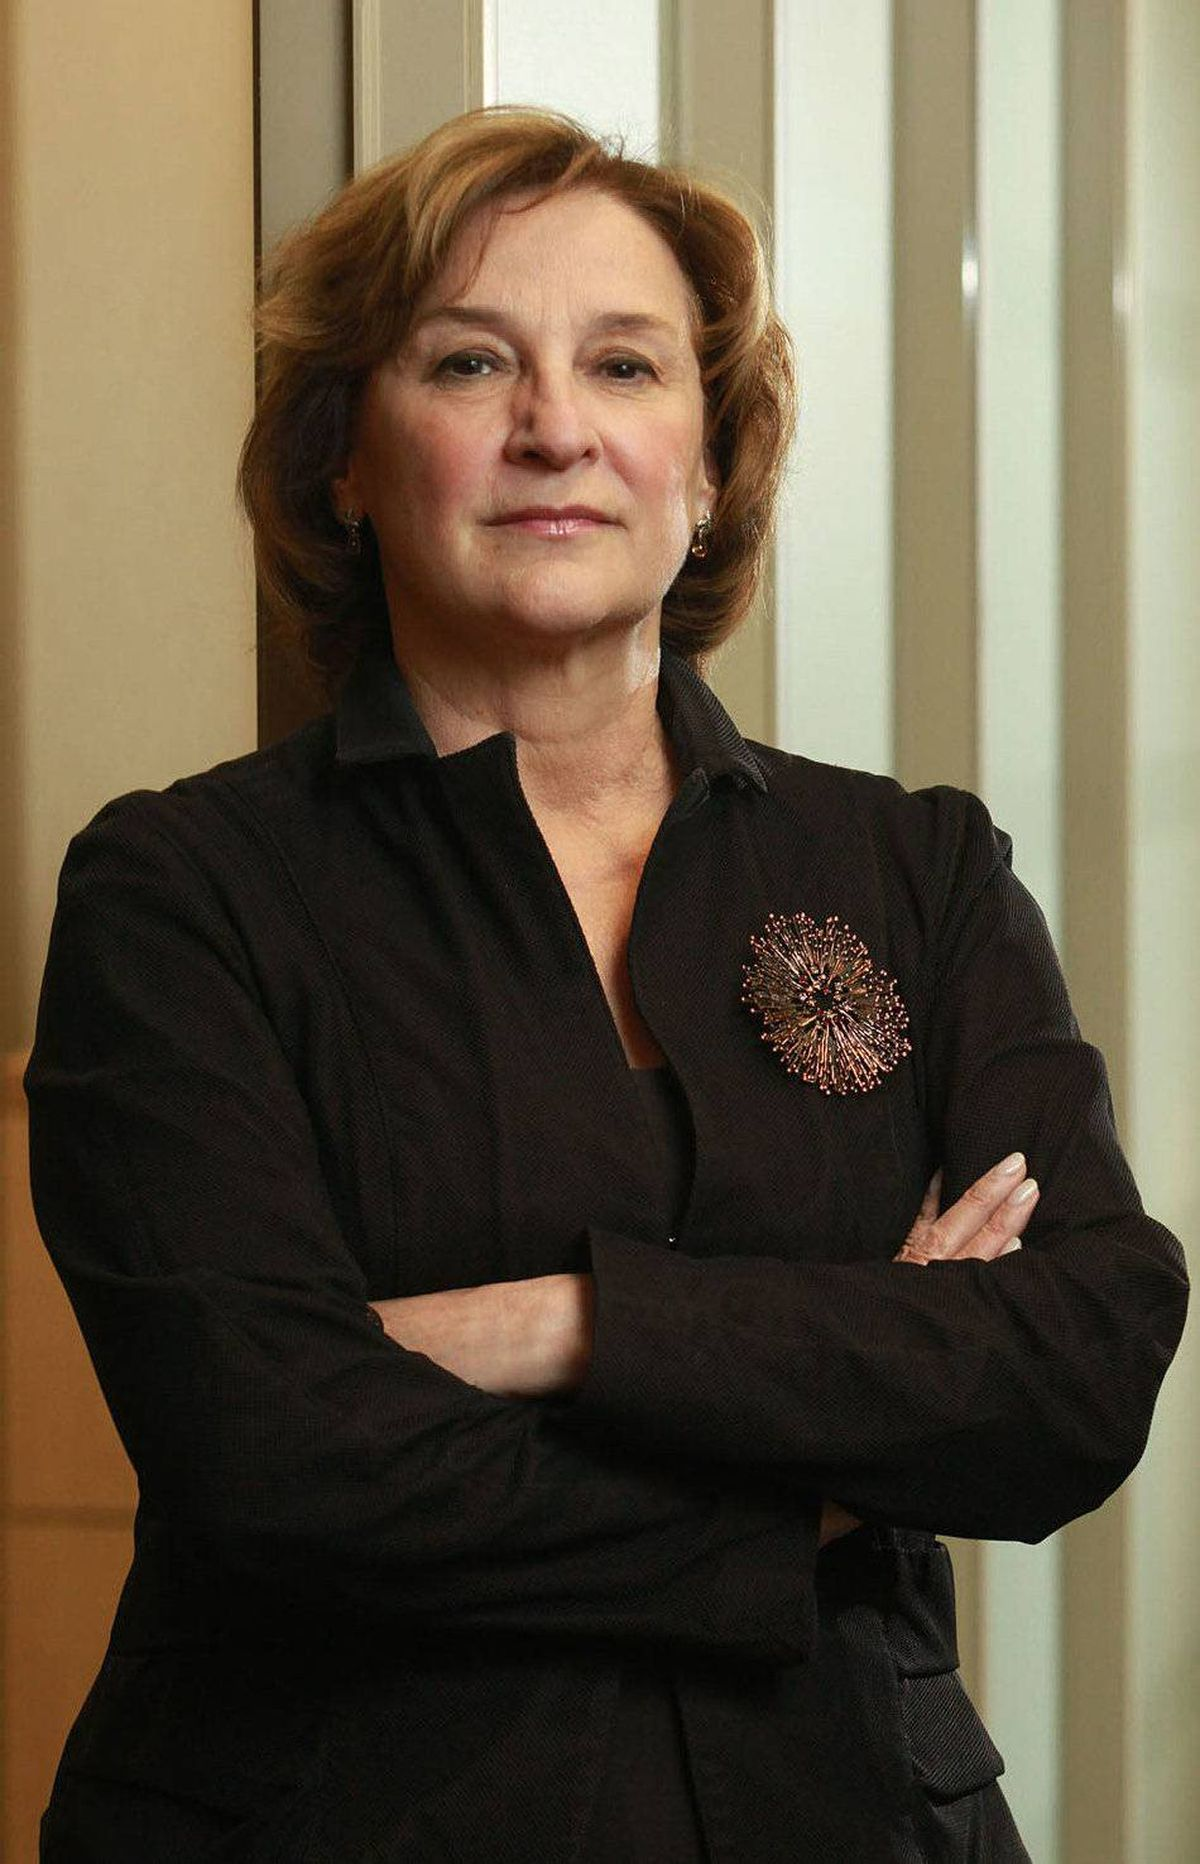 Jennifer Stoddart is the Privacy Commissioner. Established in 1983, the office has a budget of $24.6-million and 176 staff. Her hot file: persuaded Facebook to improve its privacy protections and voiced concern about online-surveillance legislation.